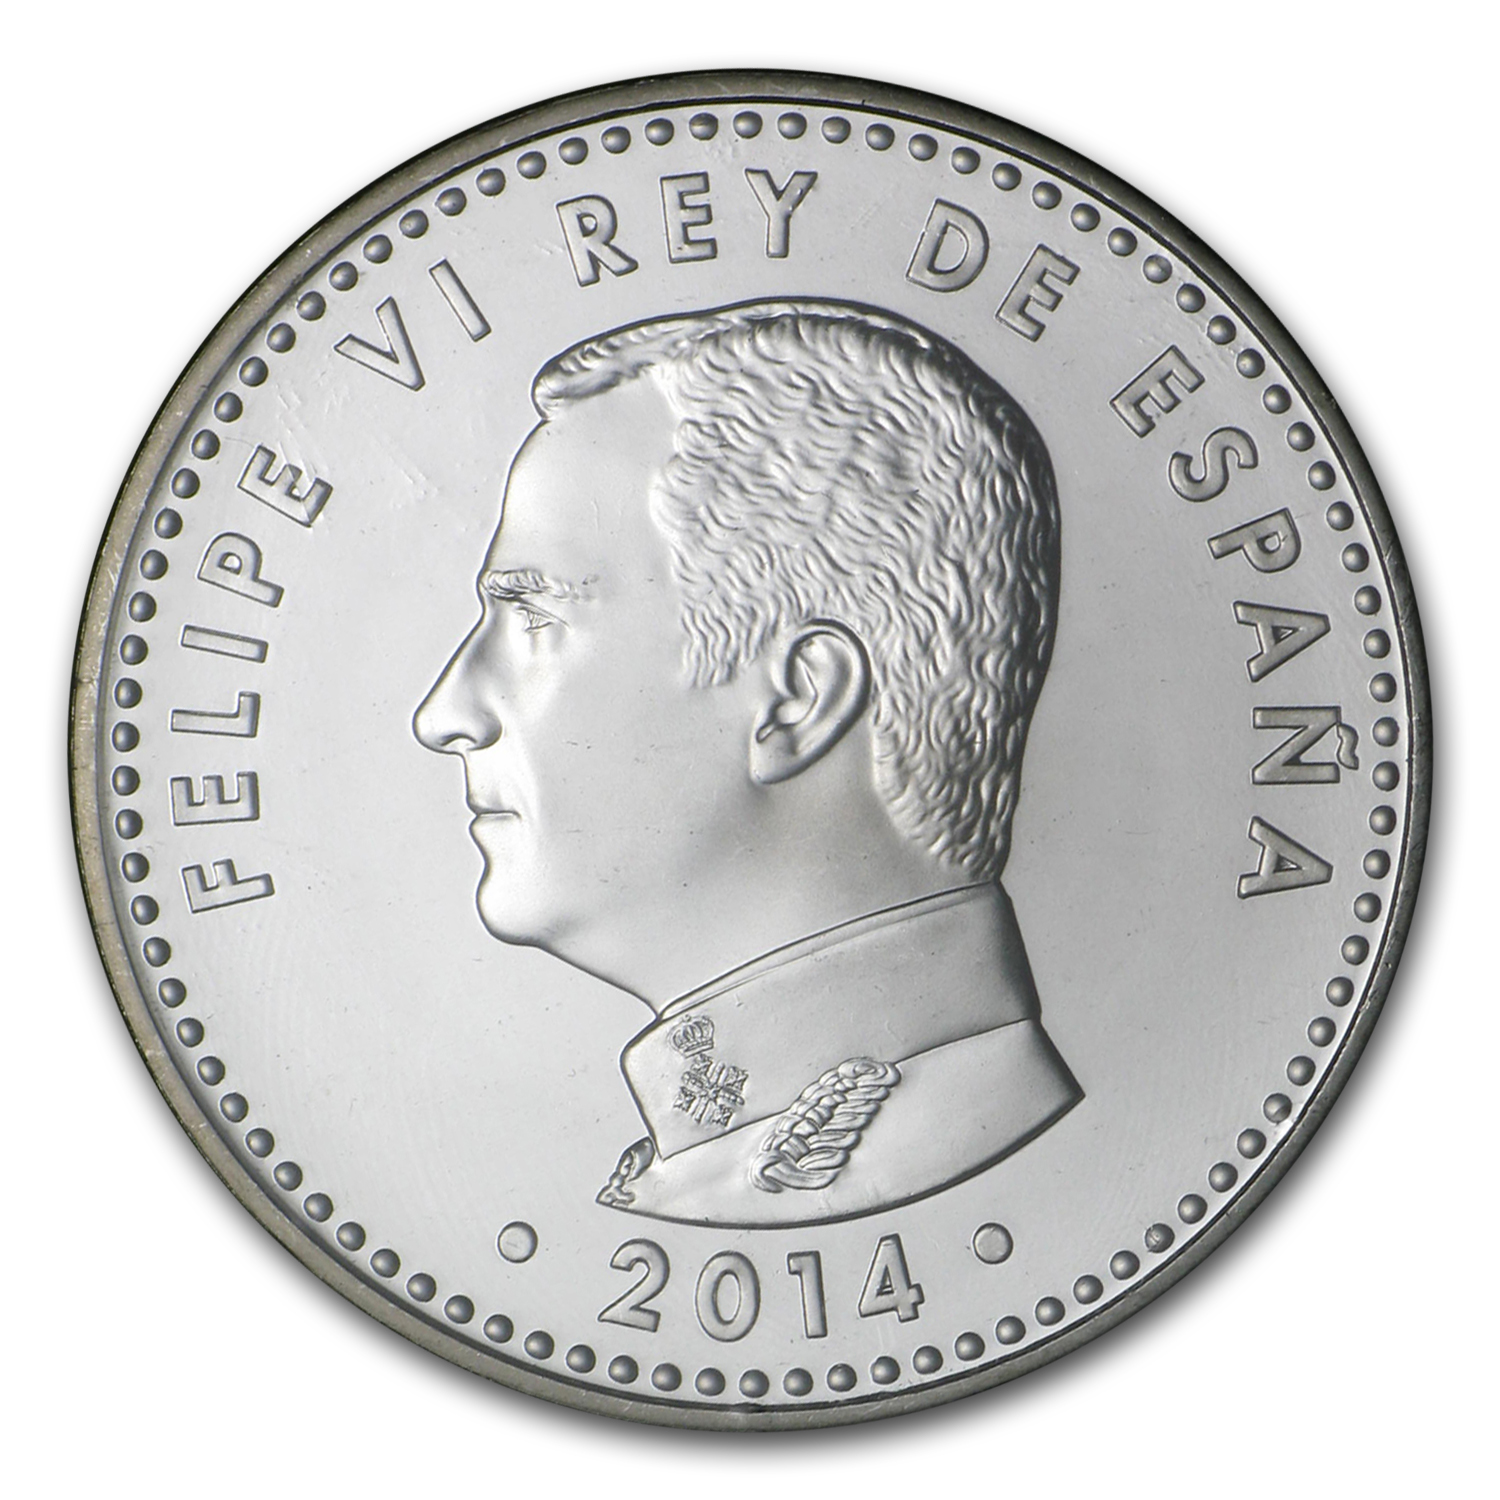 2014 Proof Silver €30 Proclamation of King Felipe VI